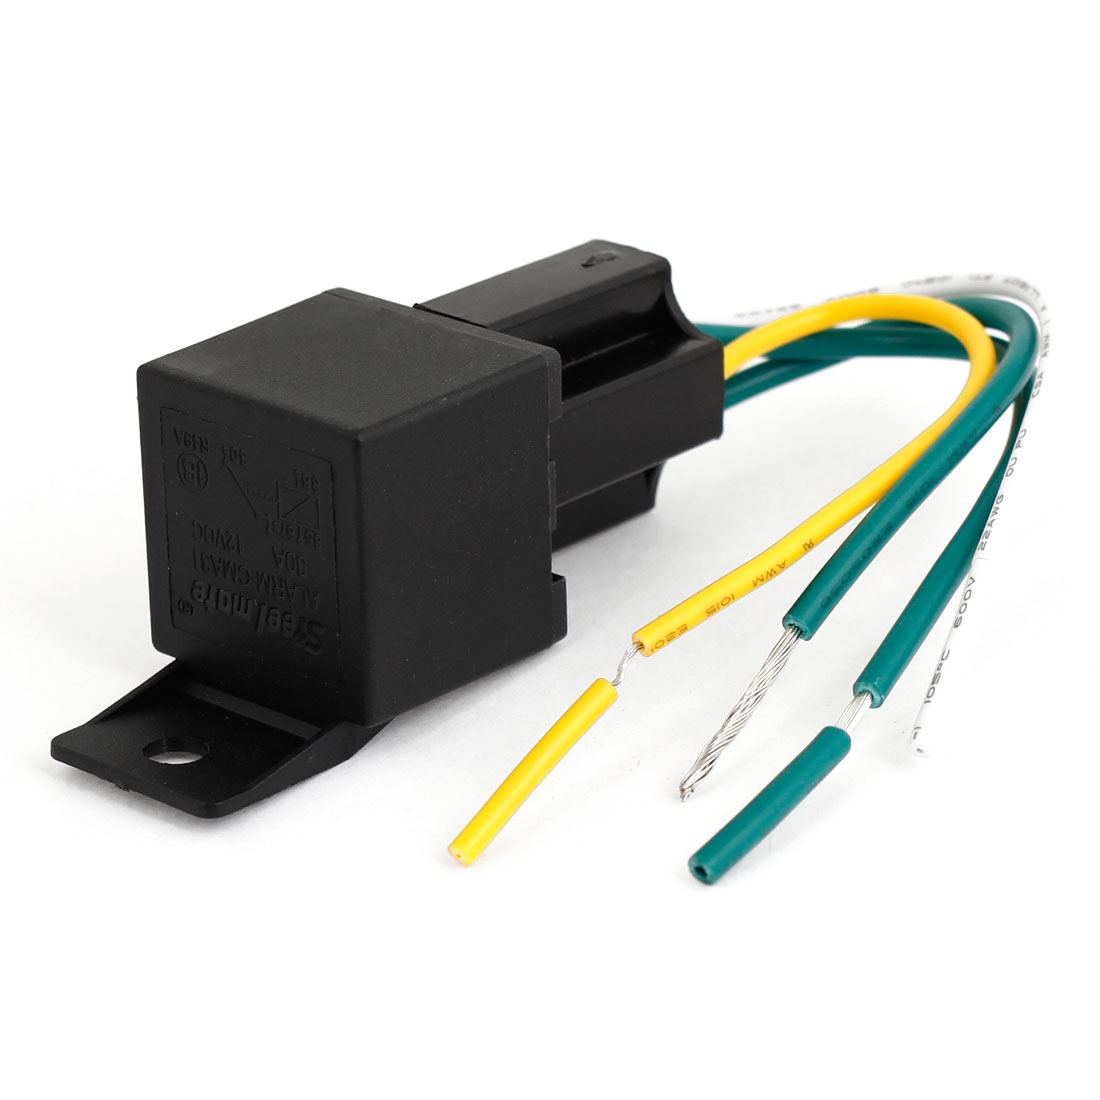 Auto Car DC 12V 30A Plastic Socket SPST 4 Pin 4 Wires Cable Power Relay